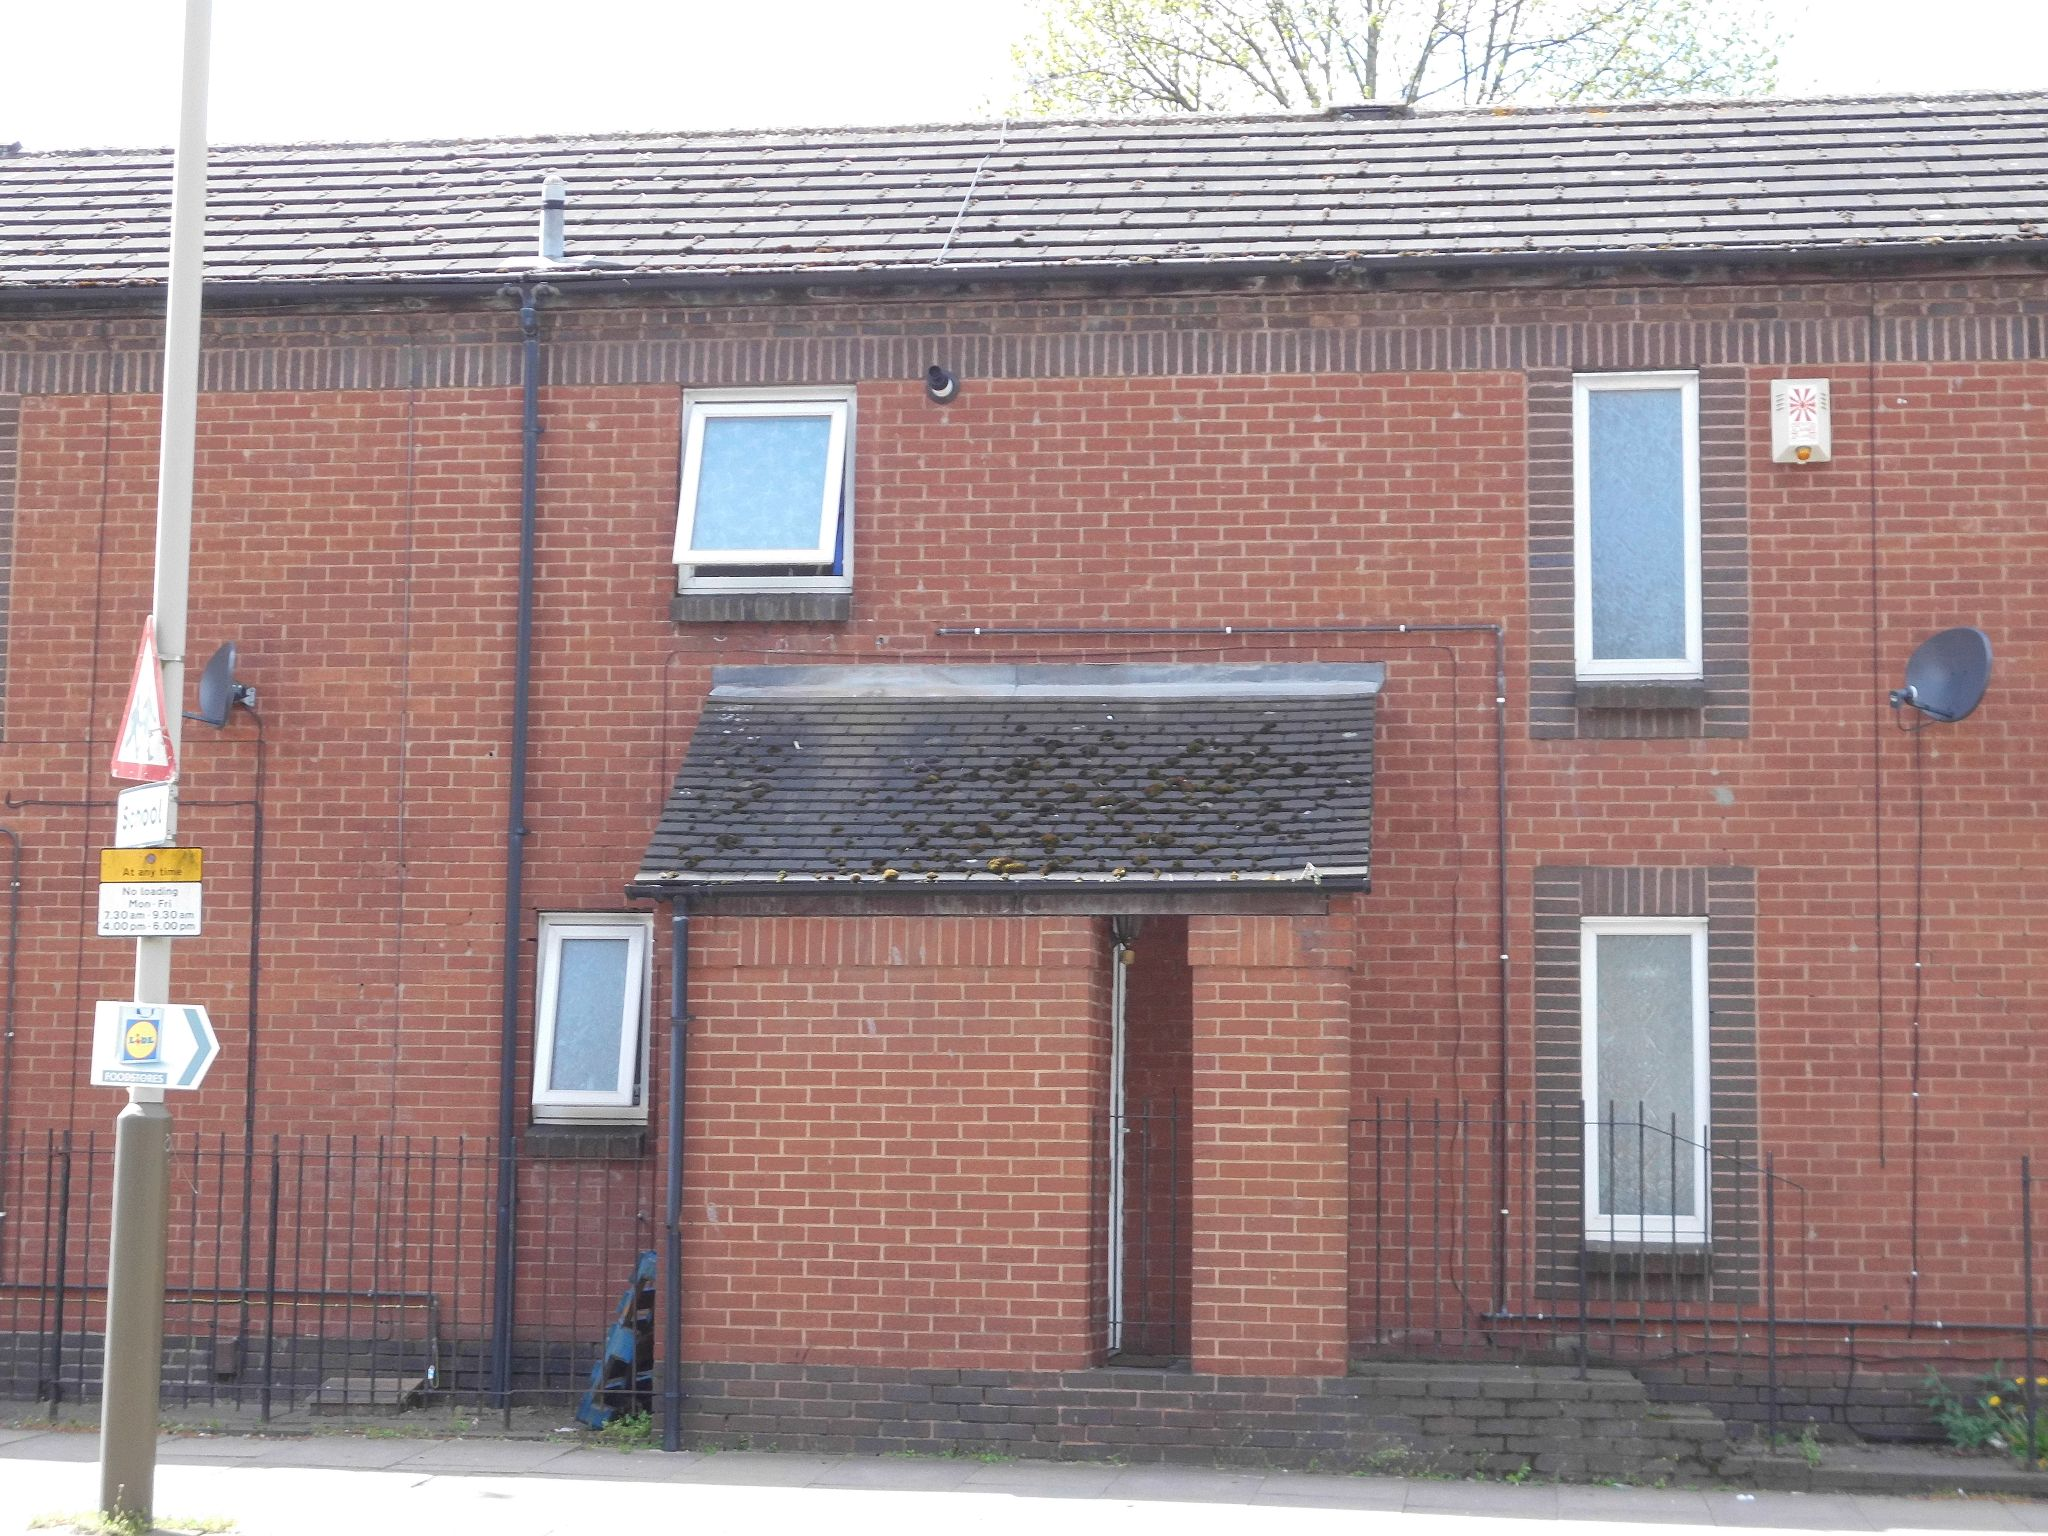 3 bedroom town house SSTC in Leicester - Photograph 1.